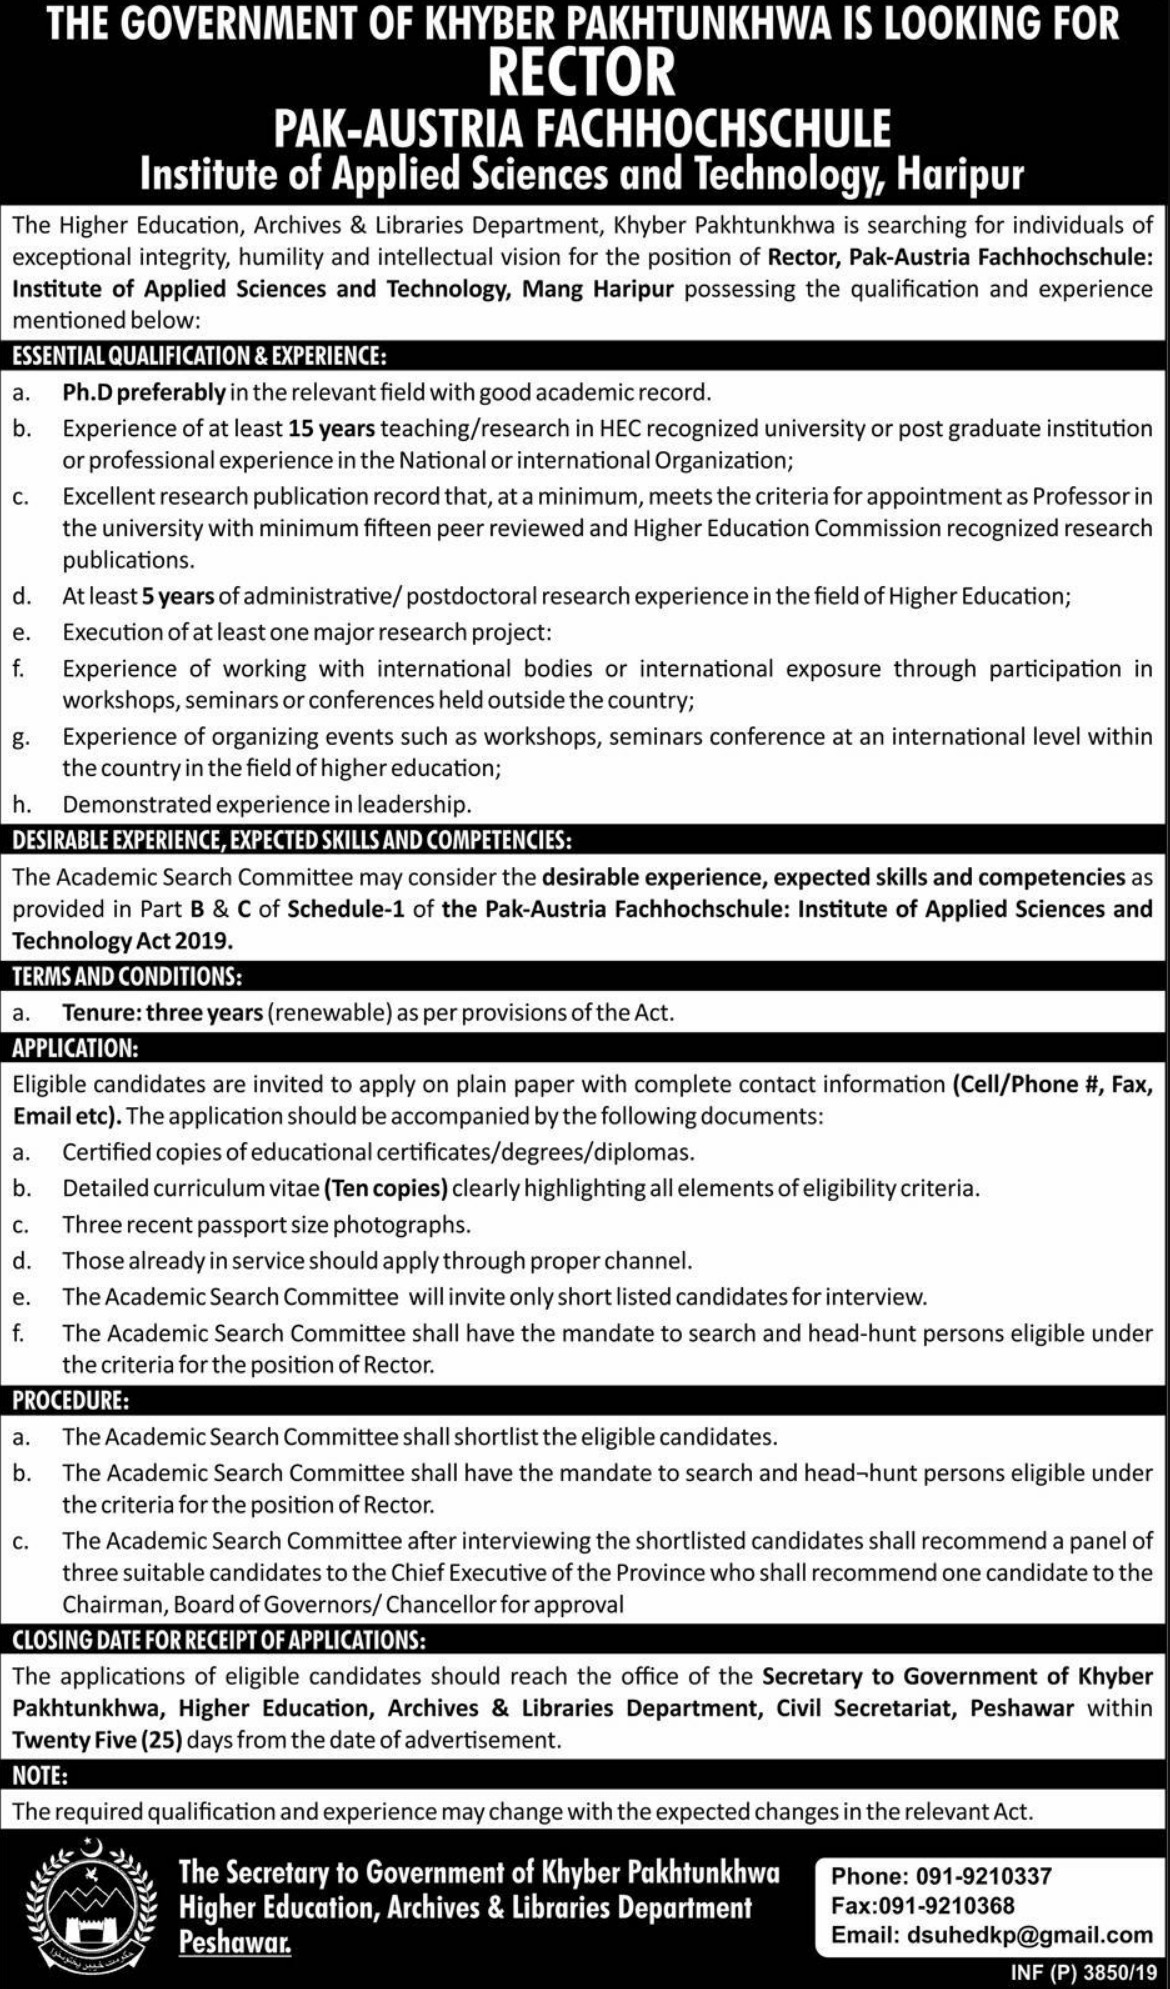 PAF Institute of Applied Sciences & Technology Haripur Jobs 2019